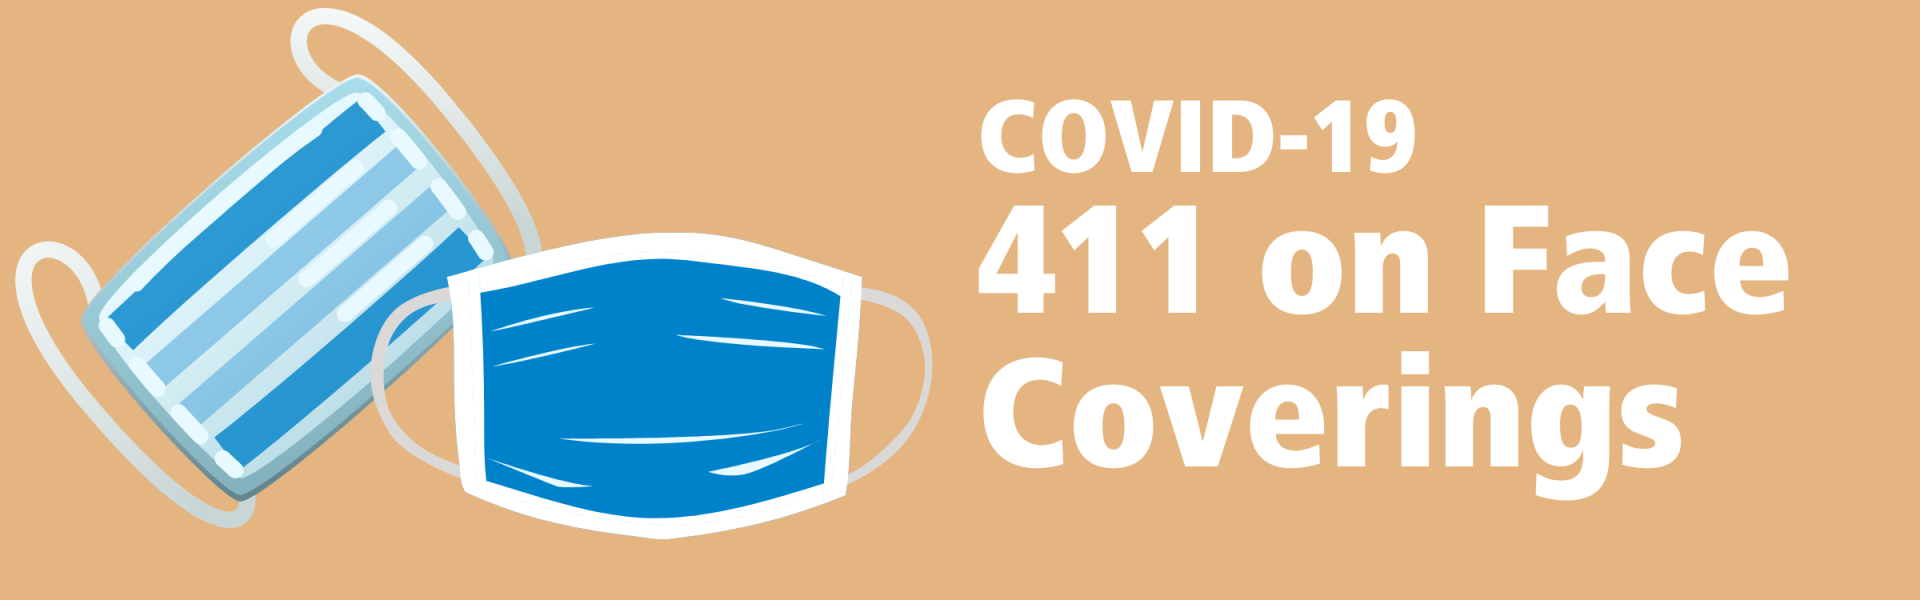 COVID-19  411 on Face Coverings